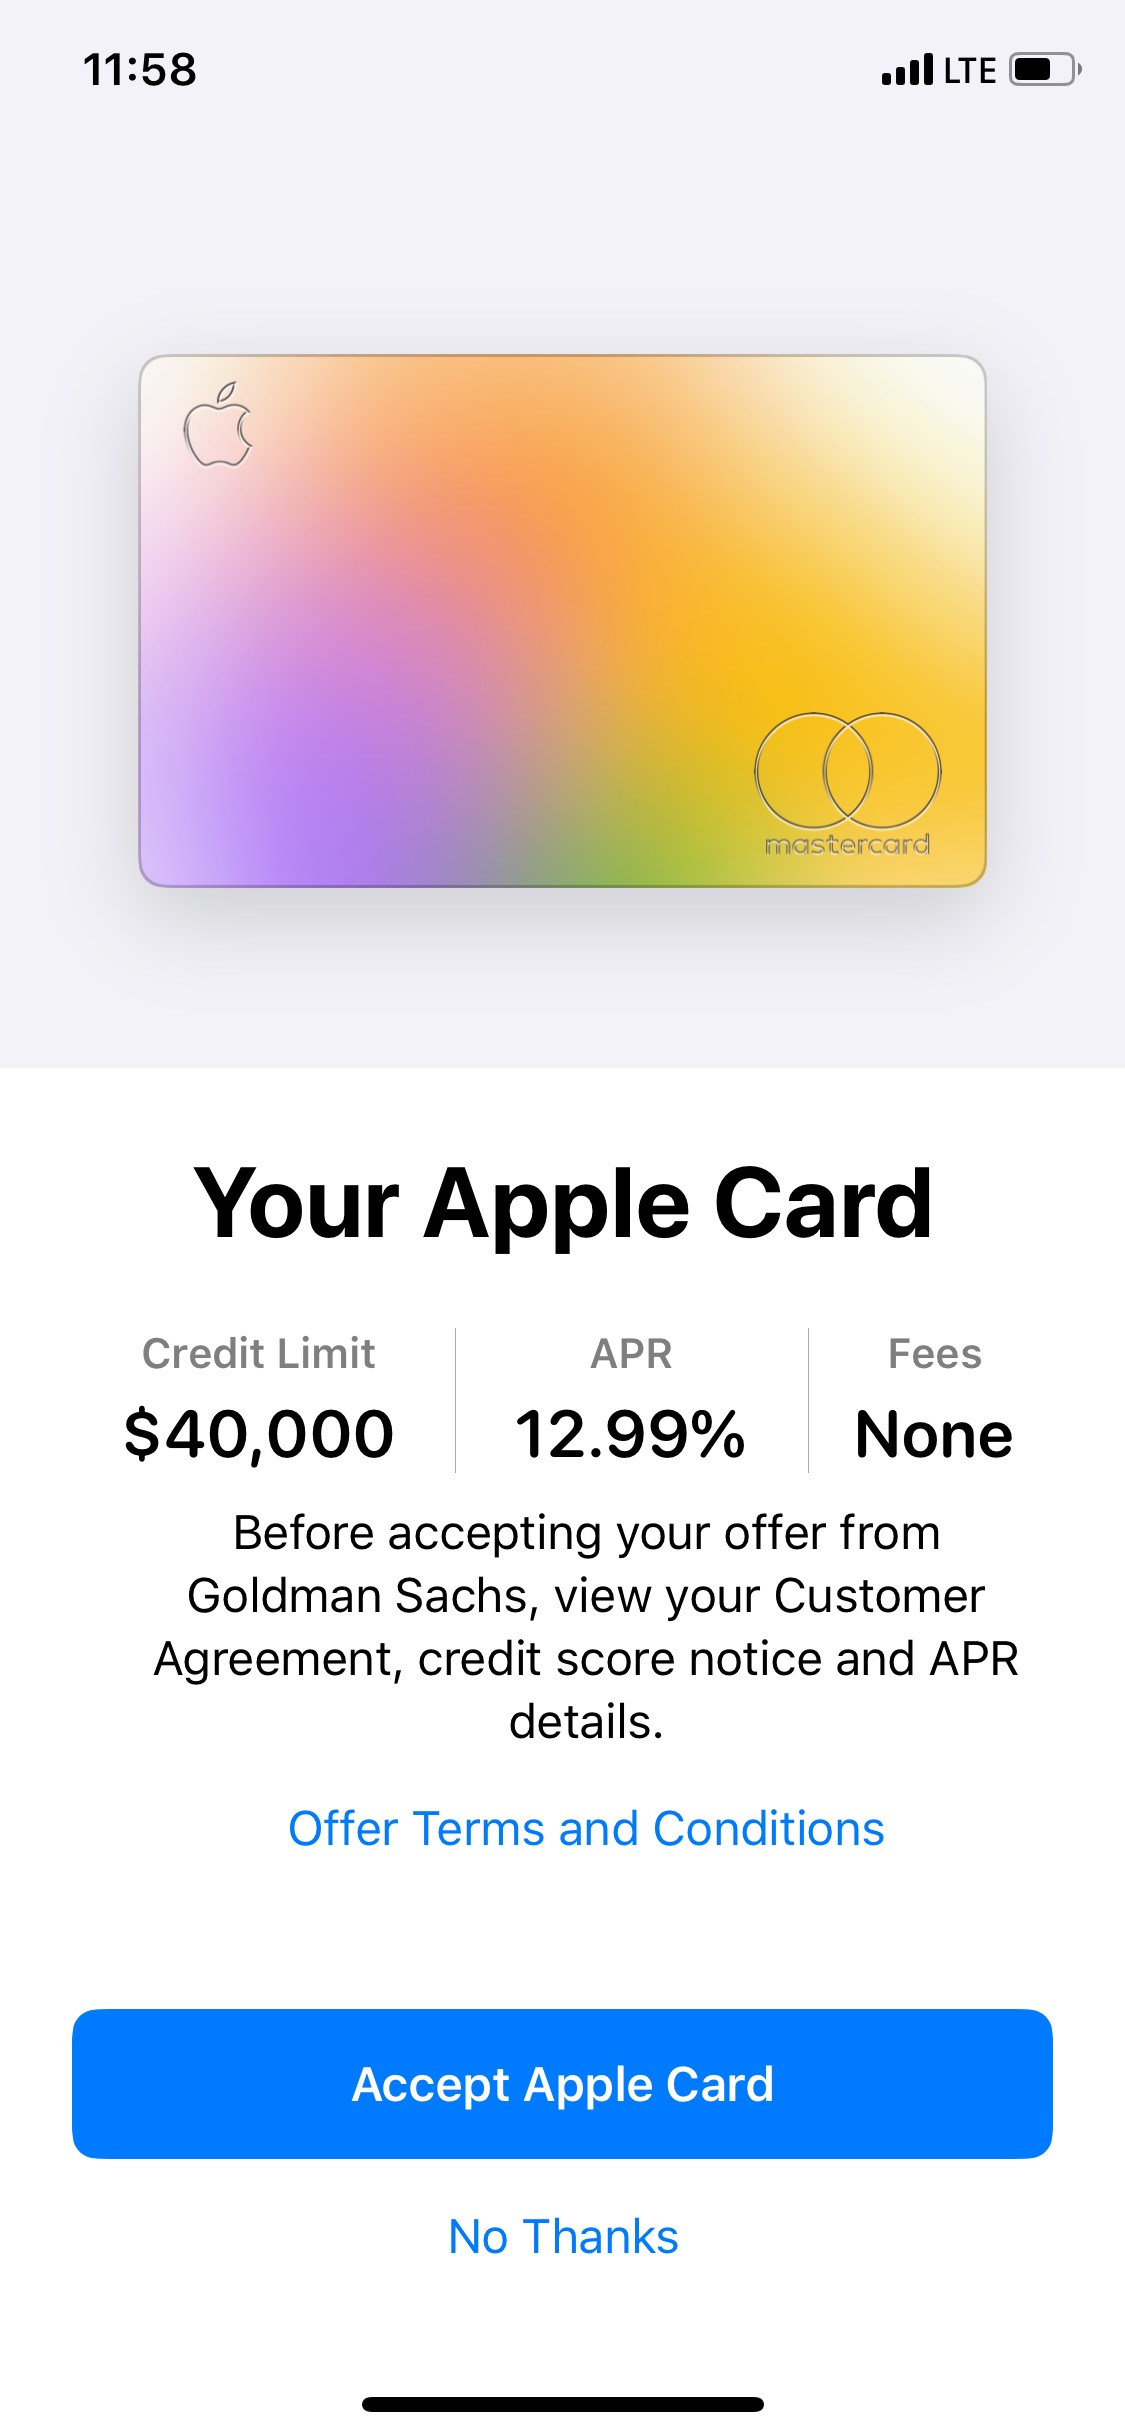 Apple Card ApplicationApproved - Page 10 - myFICO® Forums - 571010641